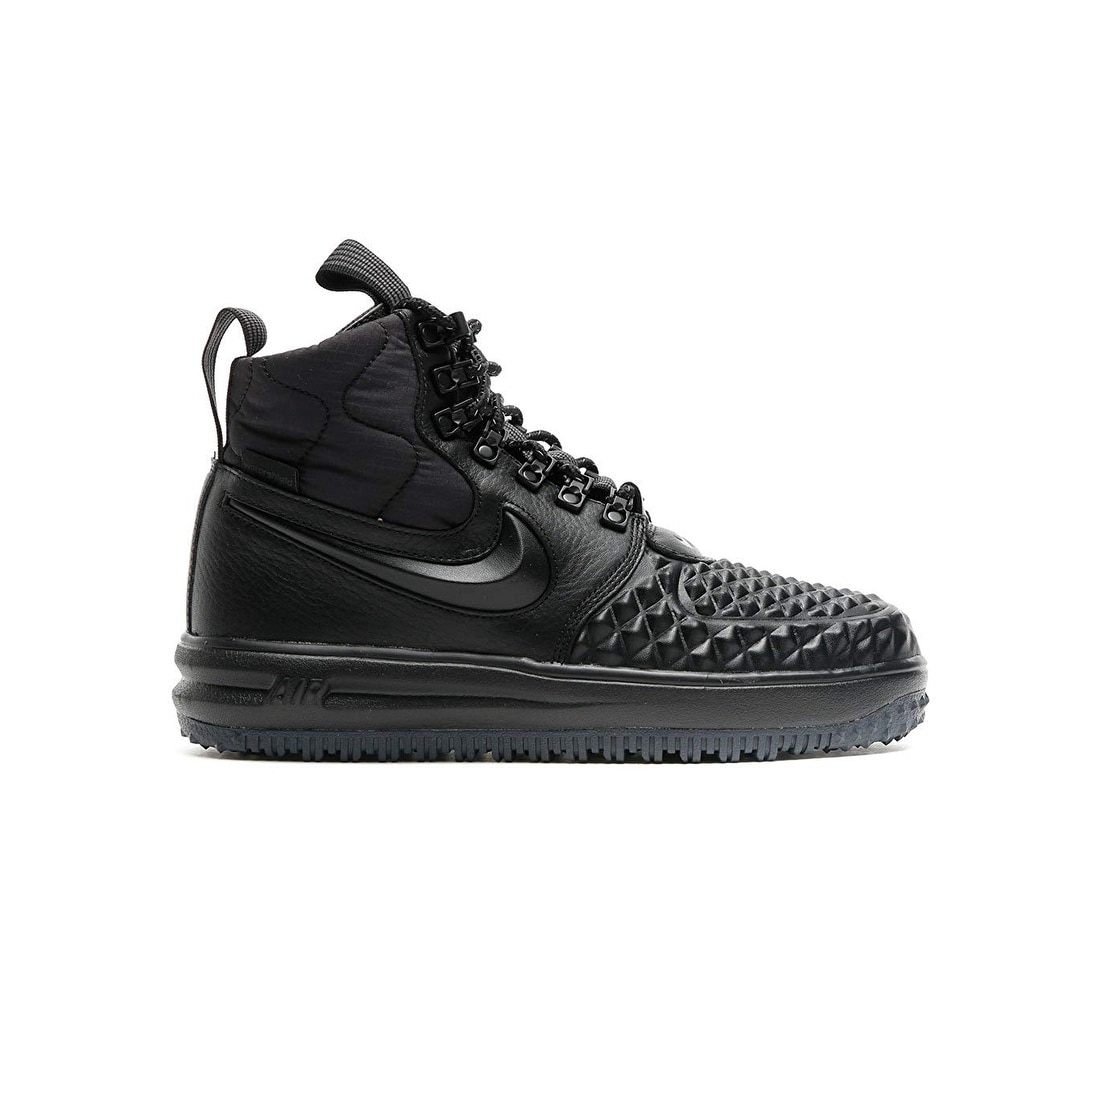 Shop NIKE WMNS Lunar Force 1 Duckboot Women Casual Lifestyle Shoes ... 8b9cd61e0e